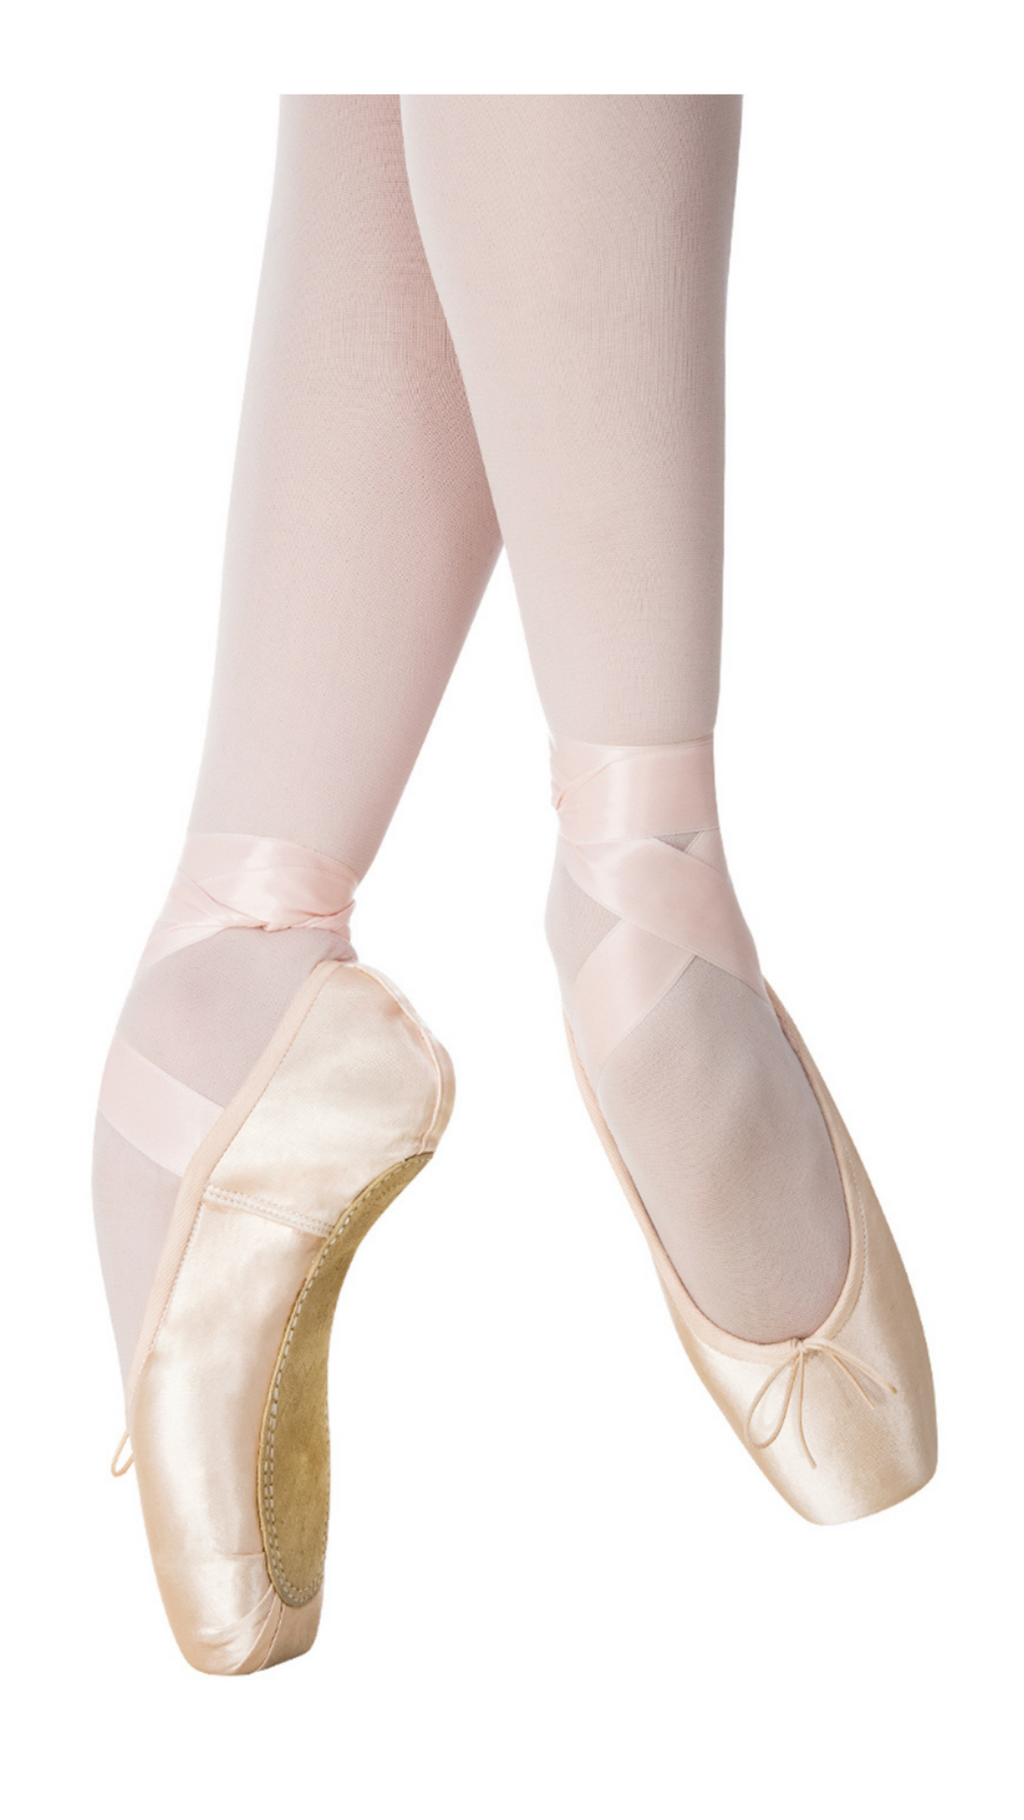 Nova Pointe Shoe Super Hard Shank (SH)